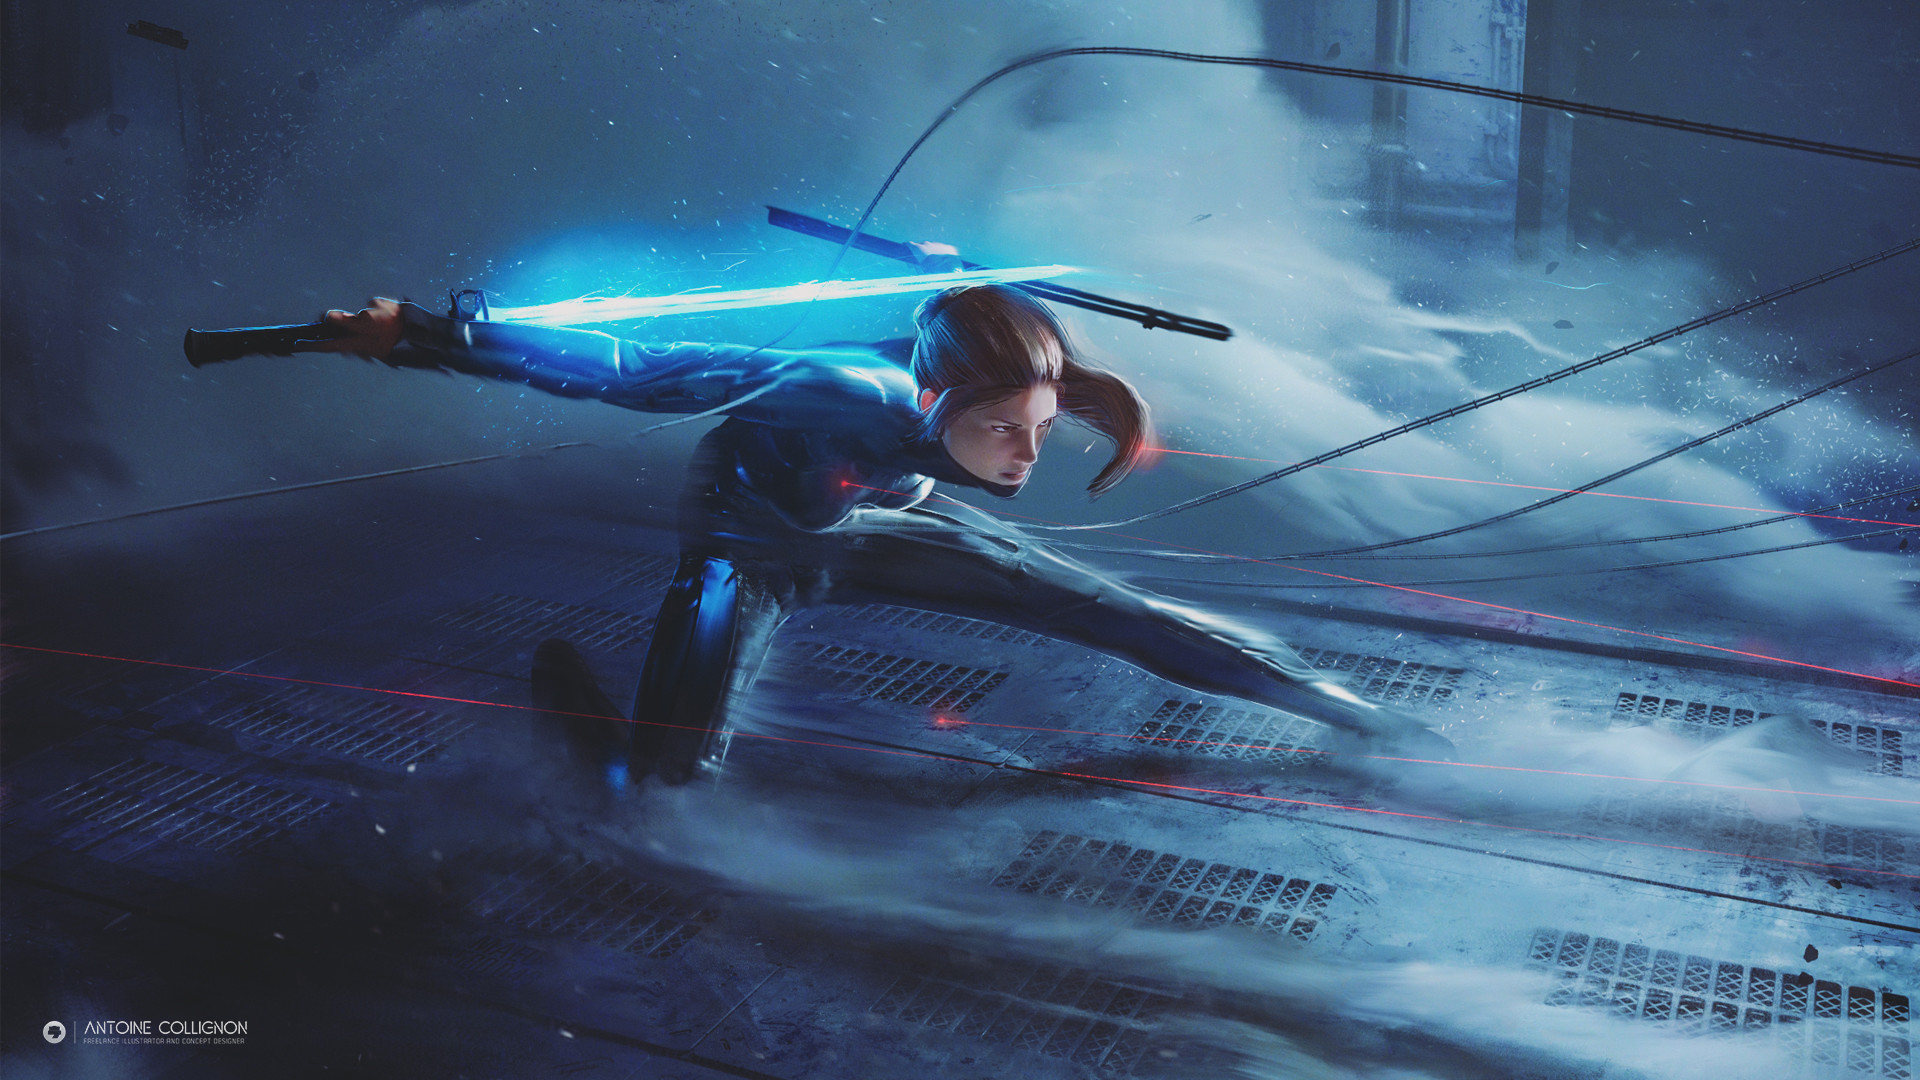 The Superb Digital Art of Antoine Collignon